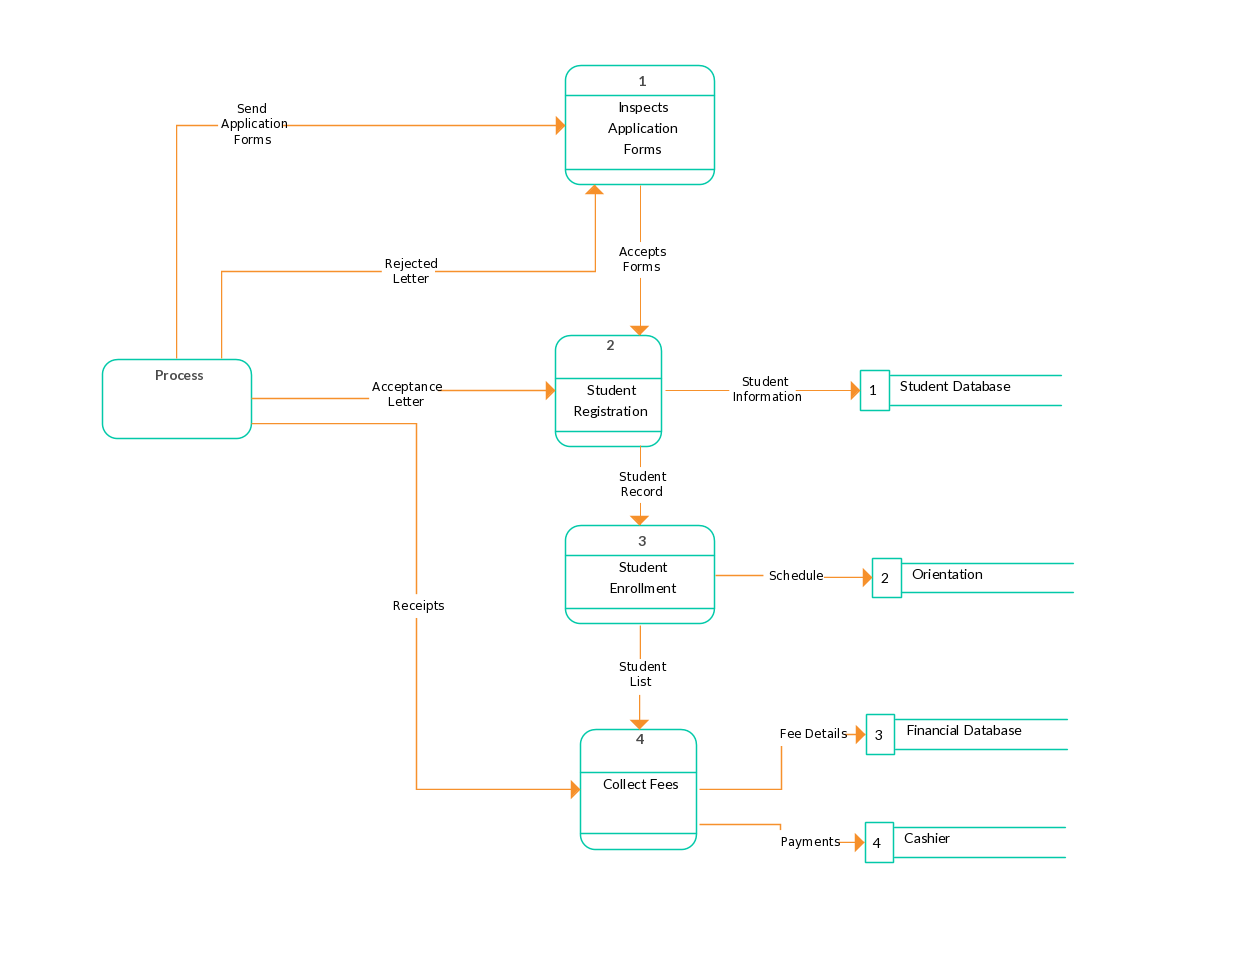 data flow diagram template of university admission [ 1260 x 955 Pixel ]